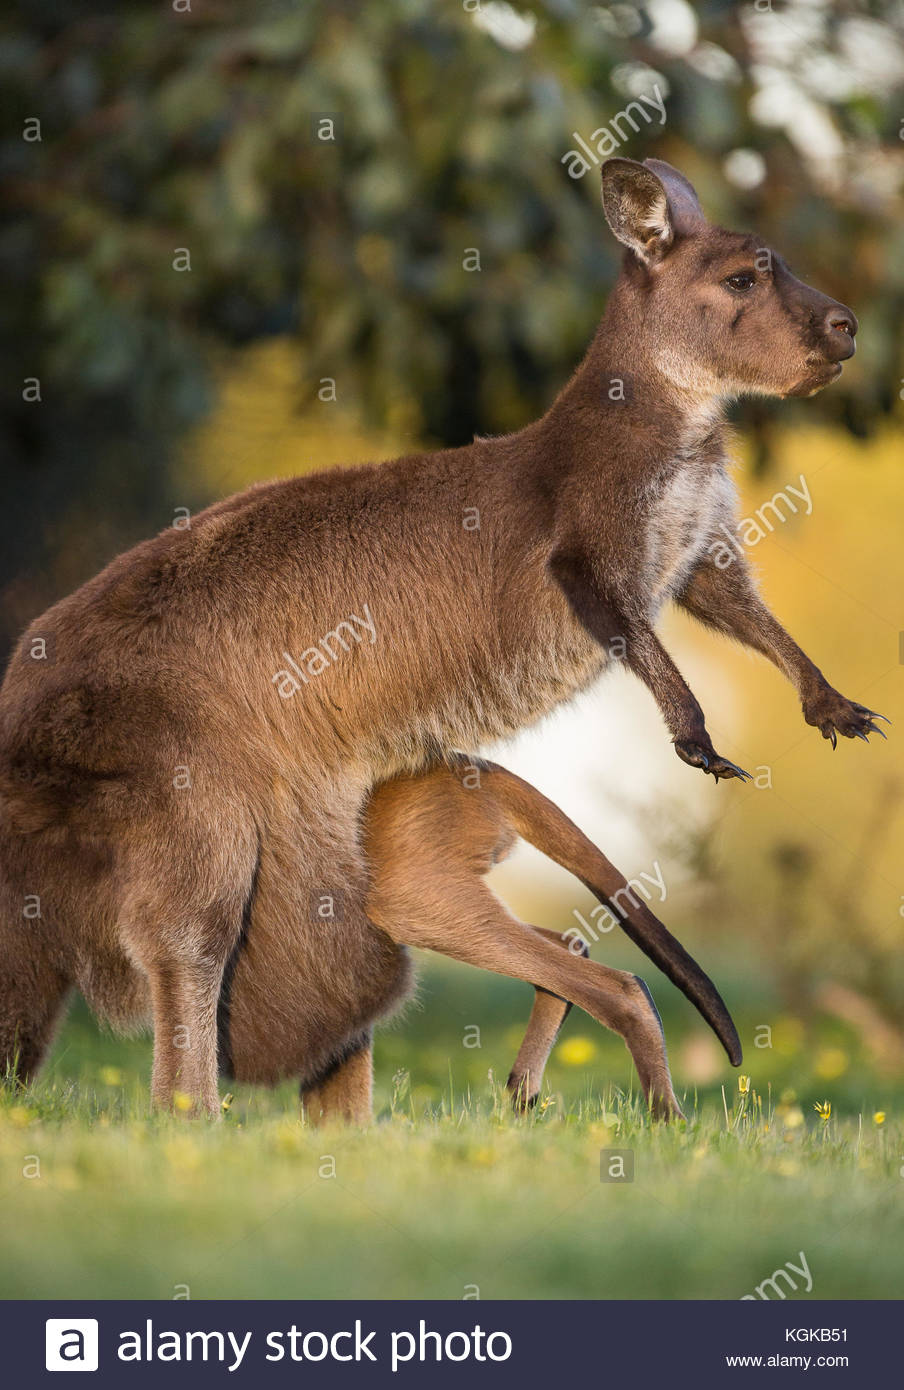 A western grey kangaroo joey going into the pouch, Macropus fuliginosus. - Stock Image